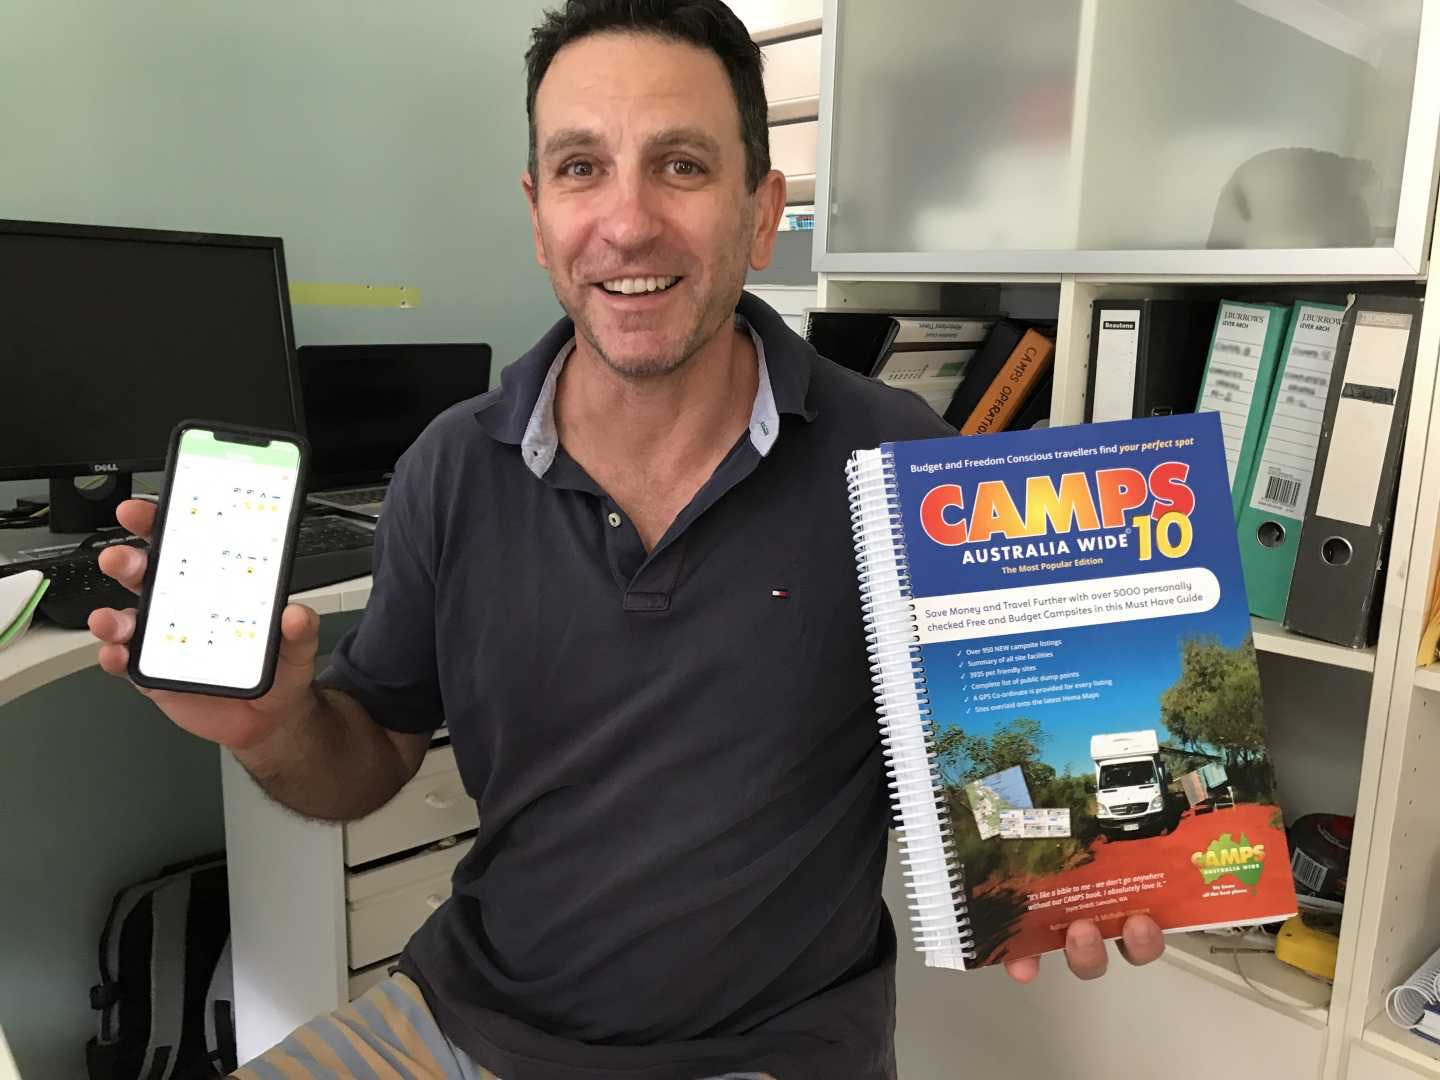 Heatley explains to App owners why the book is still a asset for your camping trips!